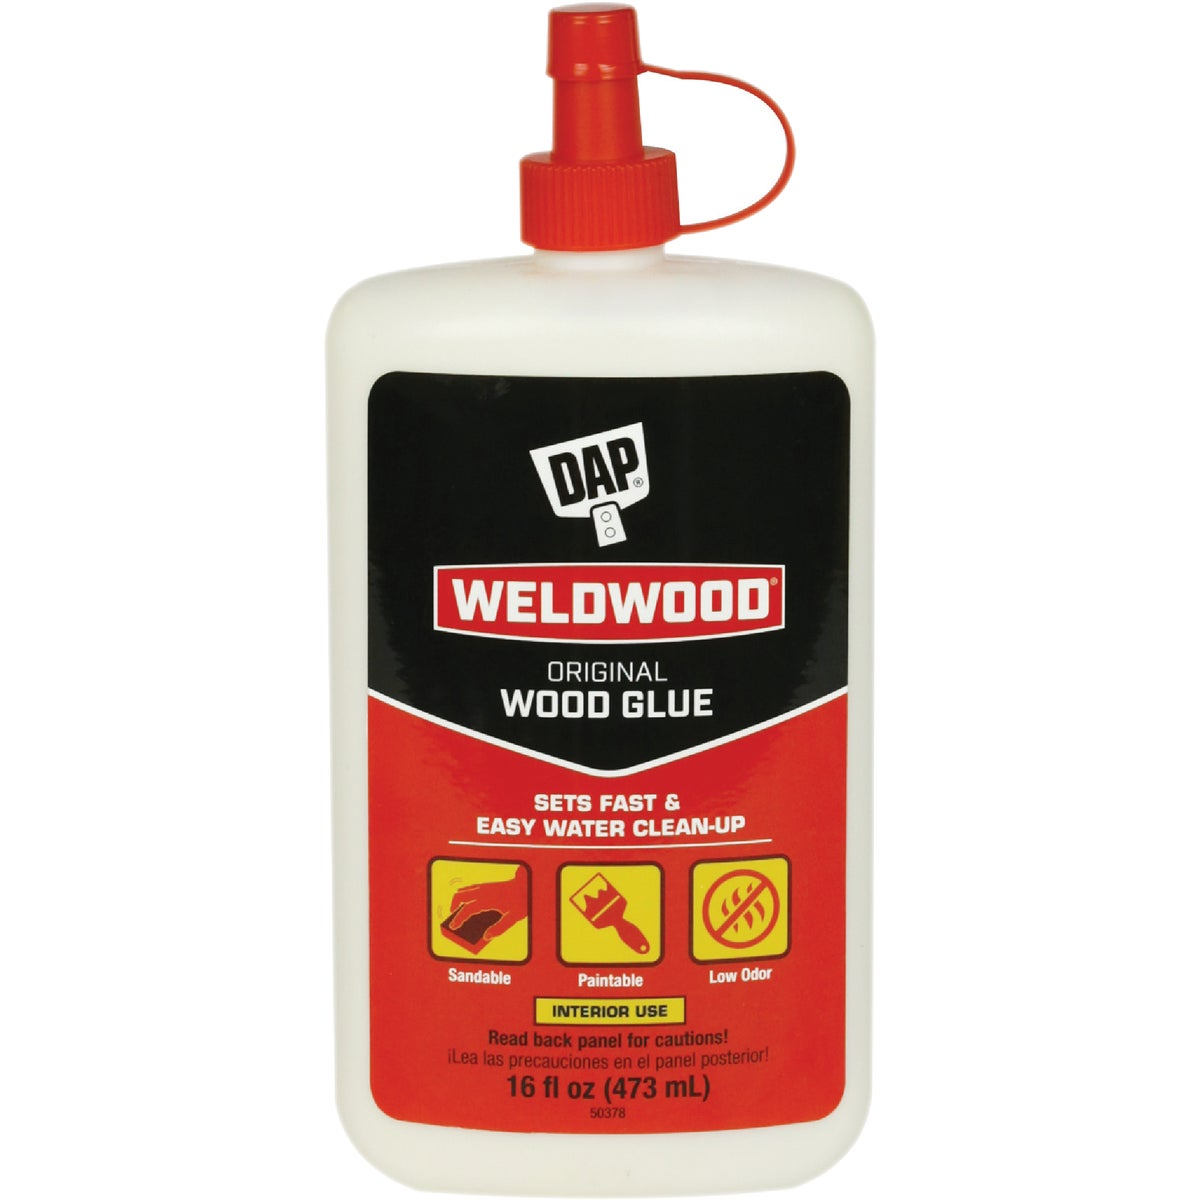 16OZ WOOD GLUE - 00491 by Dap Inc